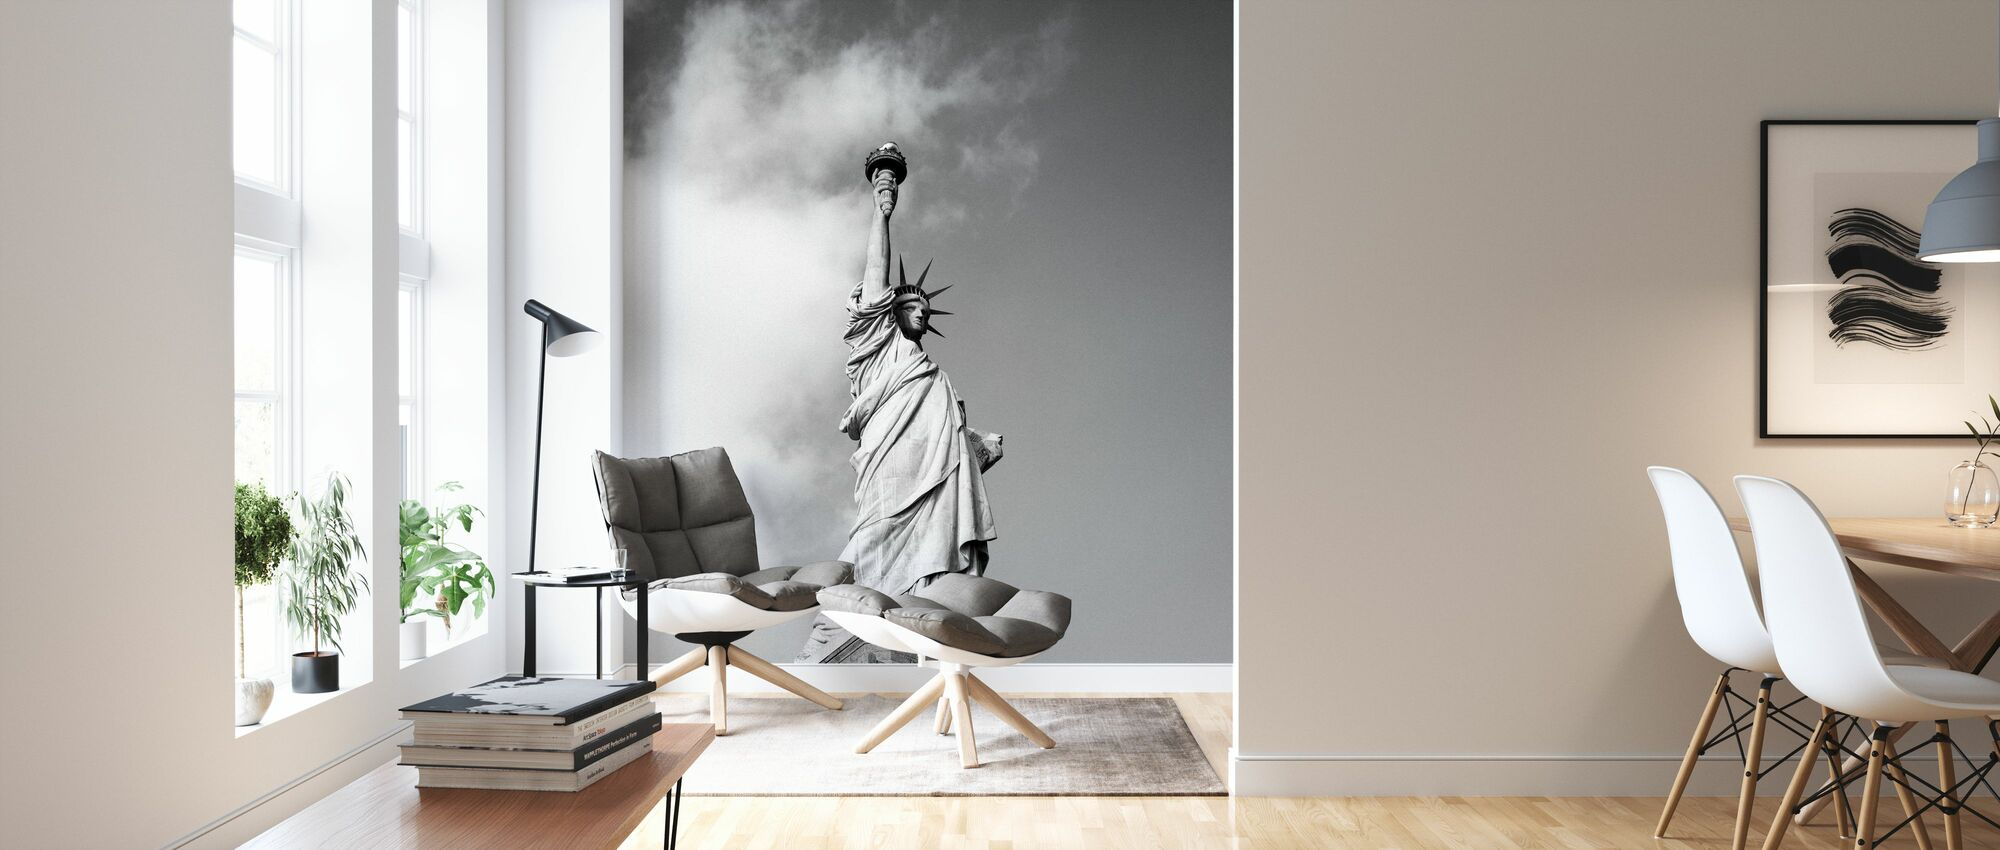 Vintage Statue of Liberty - Wallpaper - Living Room